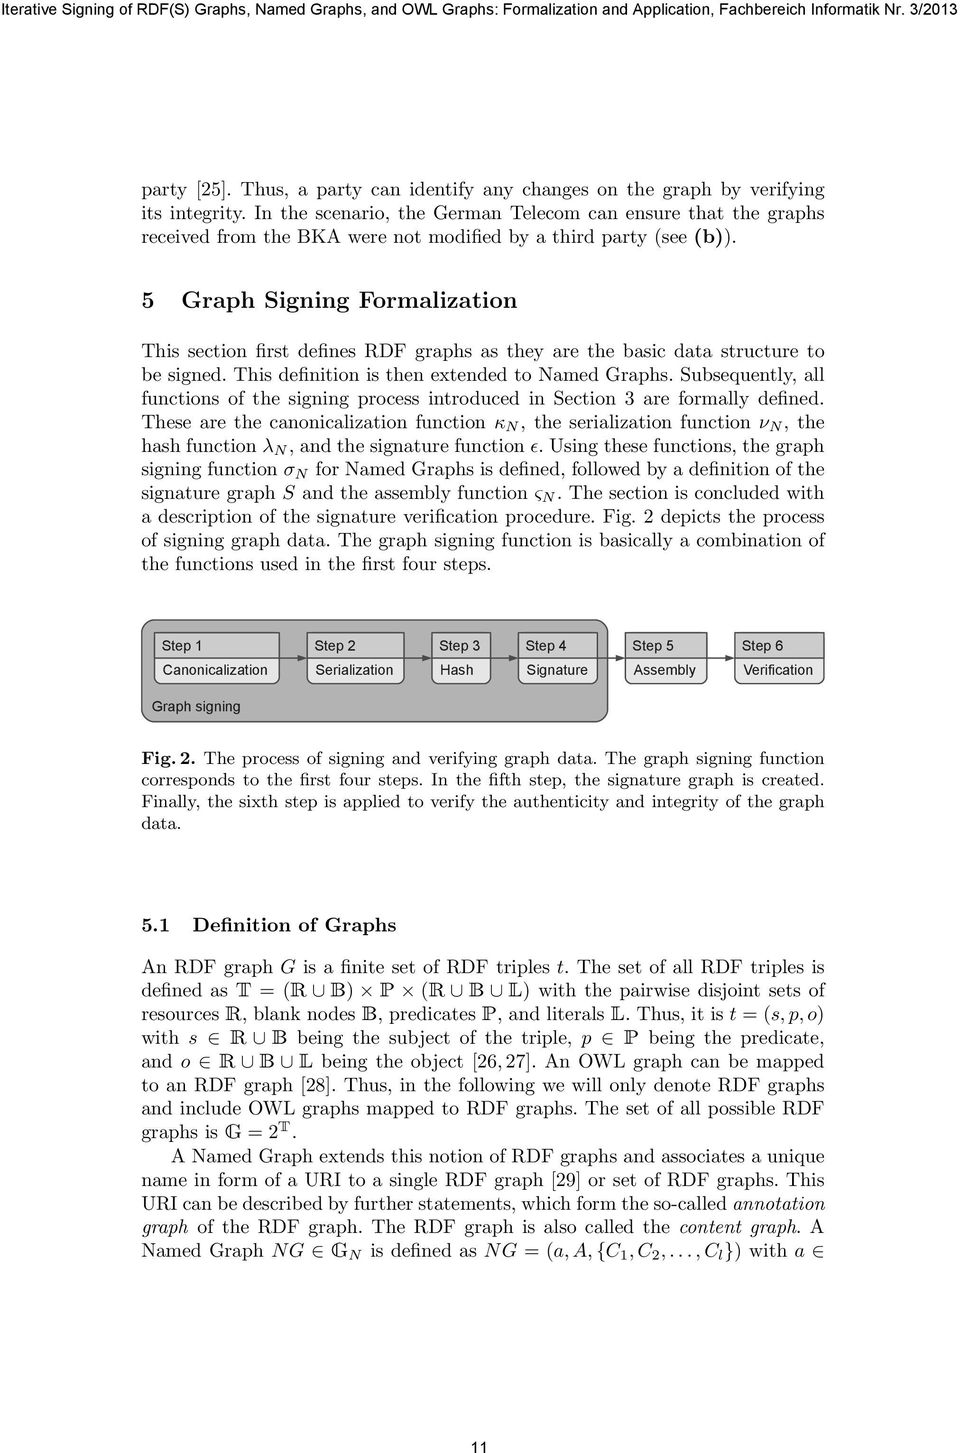 5 Graph Signing Formalization This section first defines RDF graphs as they are the basic data structure to be signed. This definition is then extended to Named Graphs.